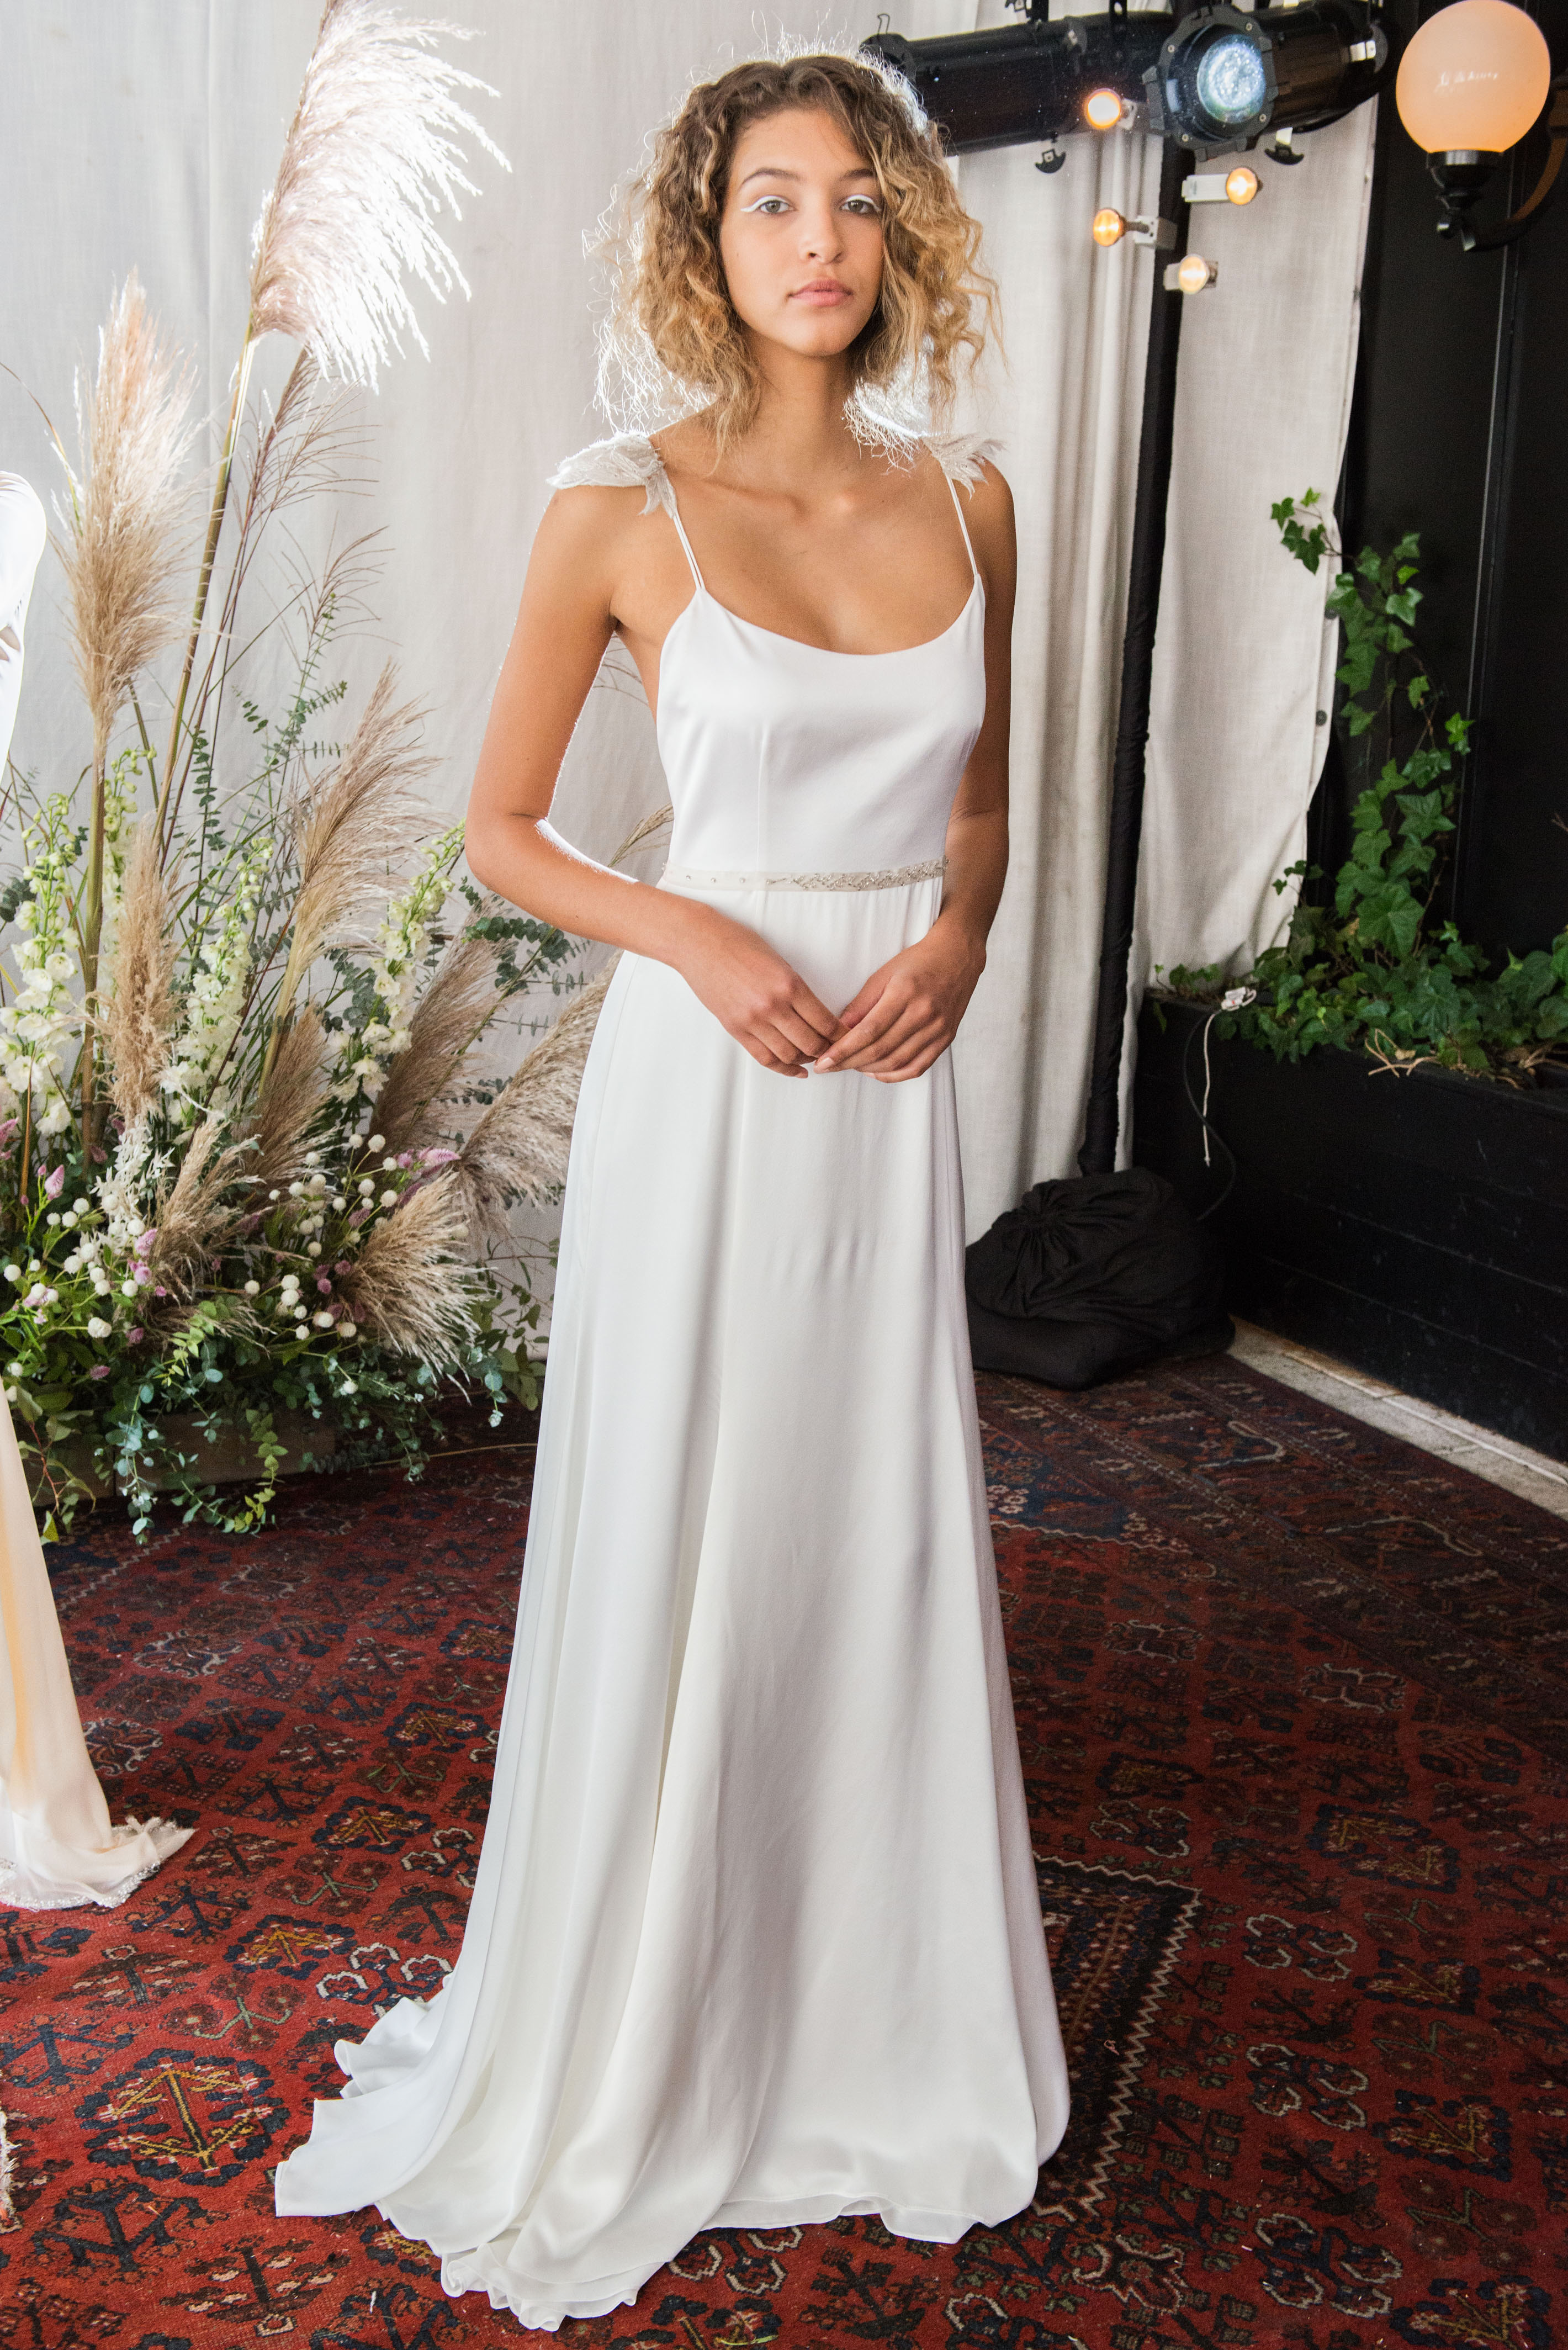 alexandra grecco wedding dress fall 2018 spaghetti straps a-line cap sleeves